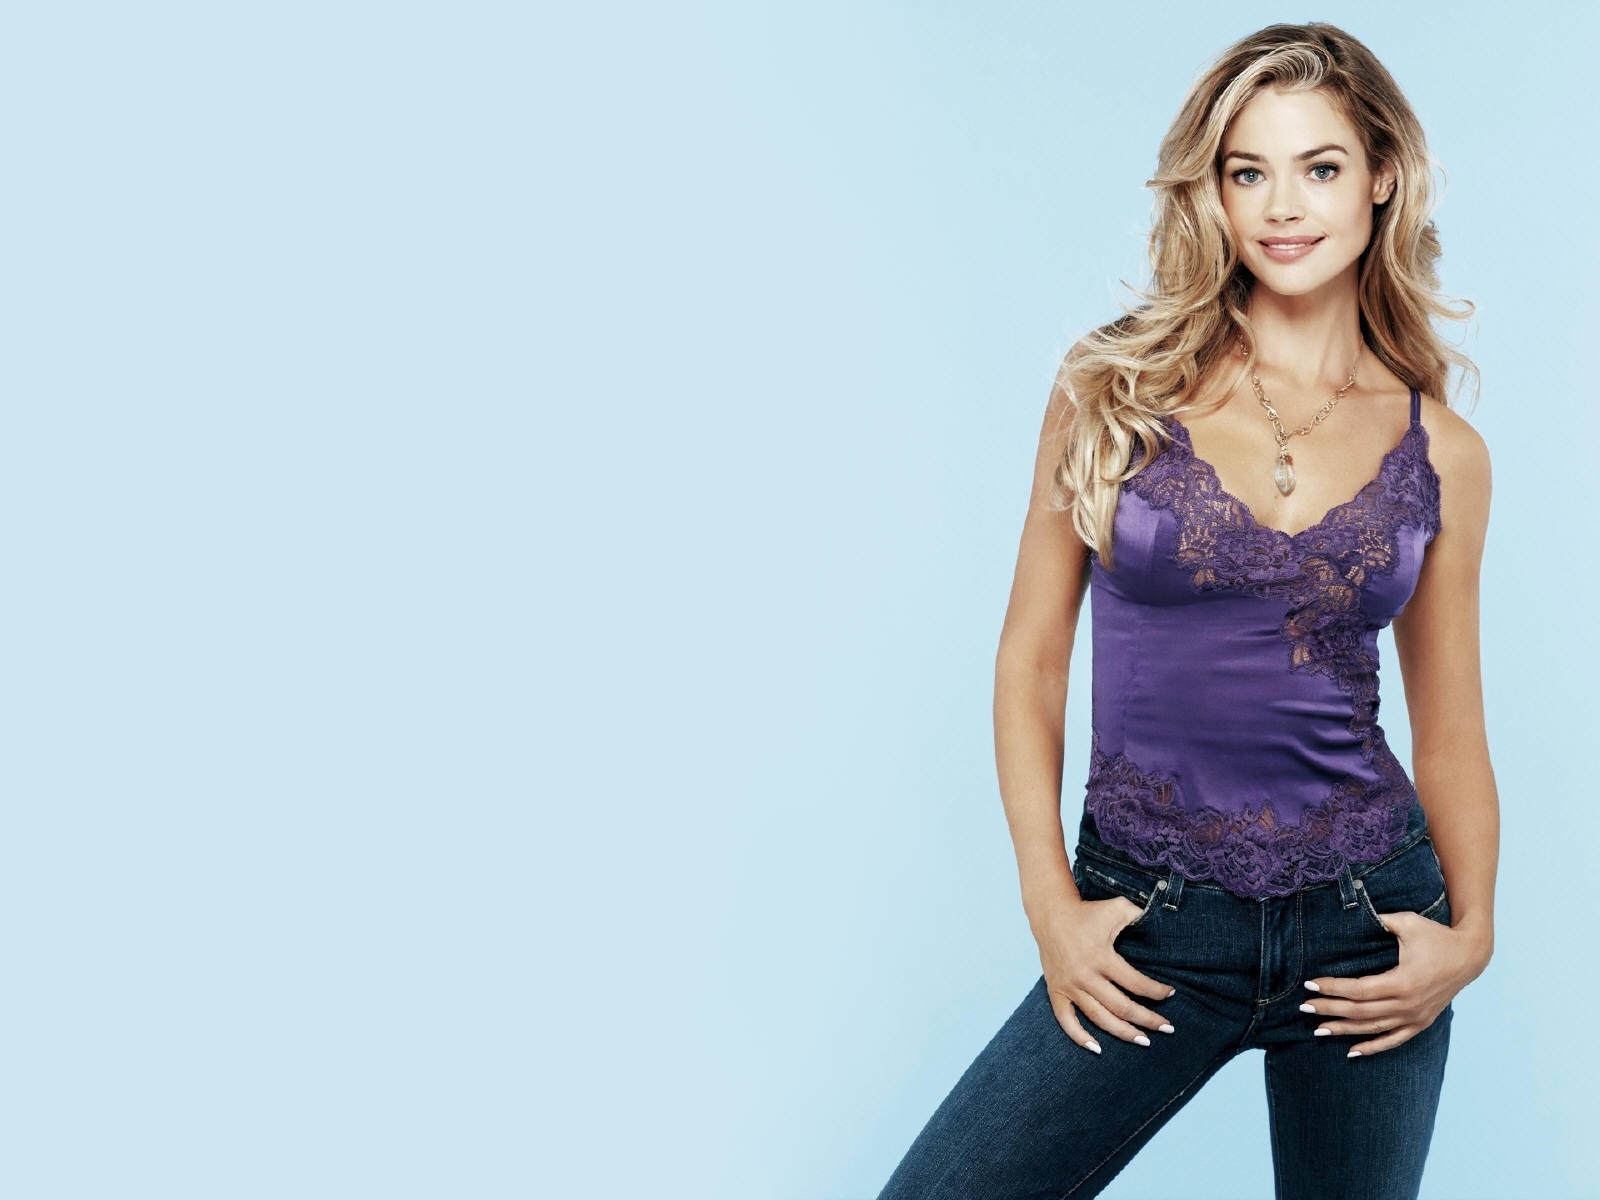 Wallpaper di Denise Richards - 44